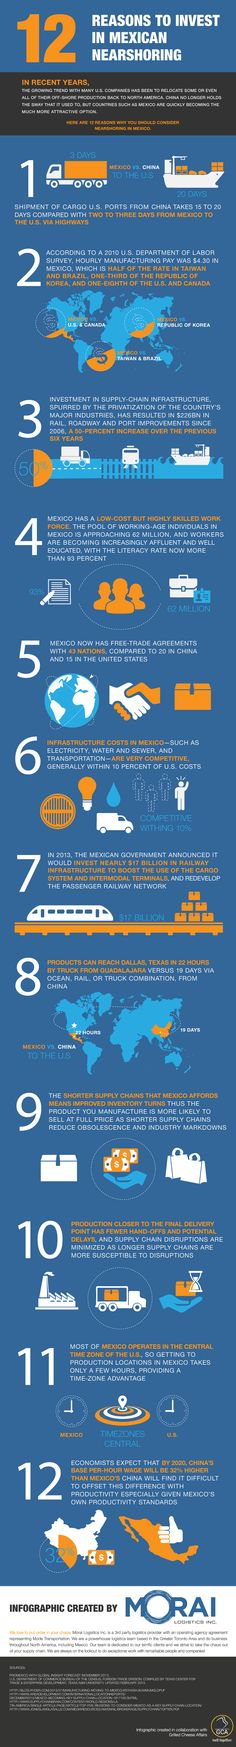 morai-logistics-12-reasons-to-invest-in-mexican-nearshoring